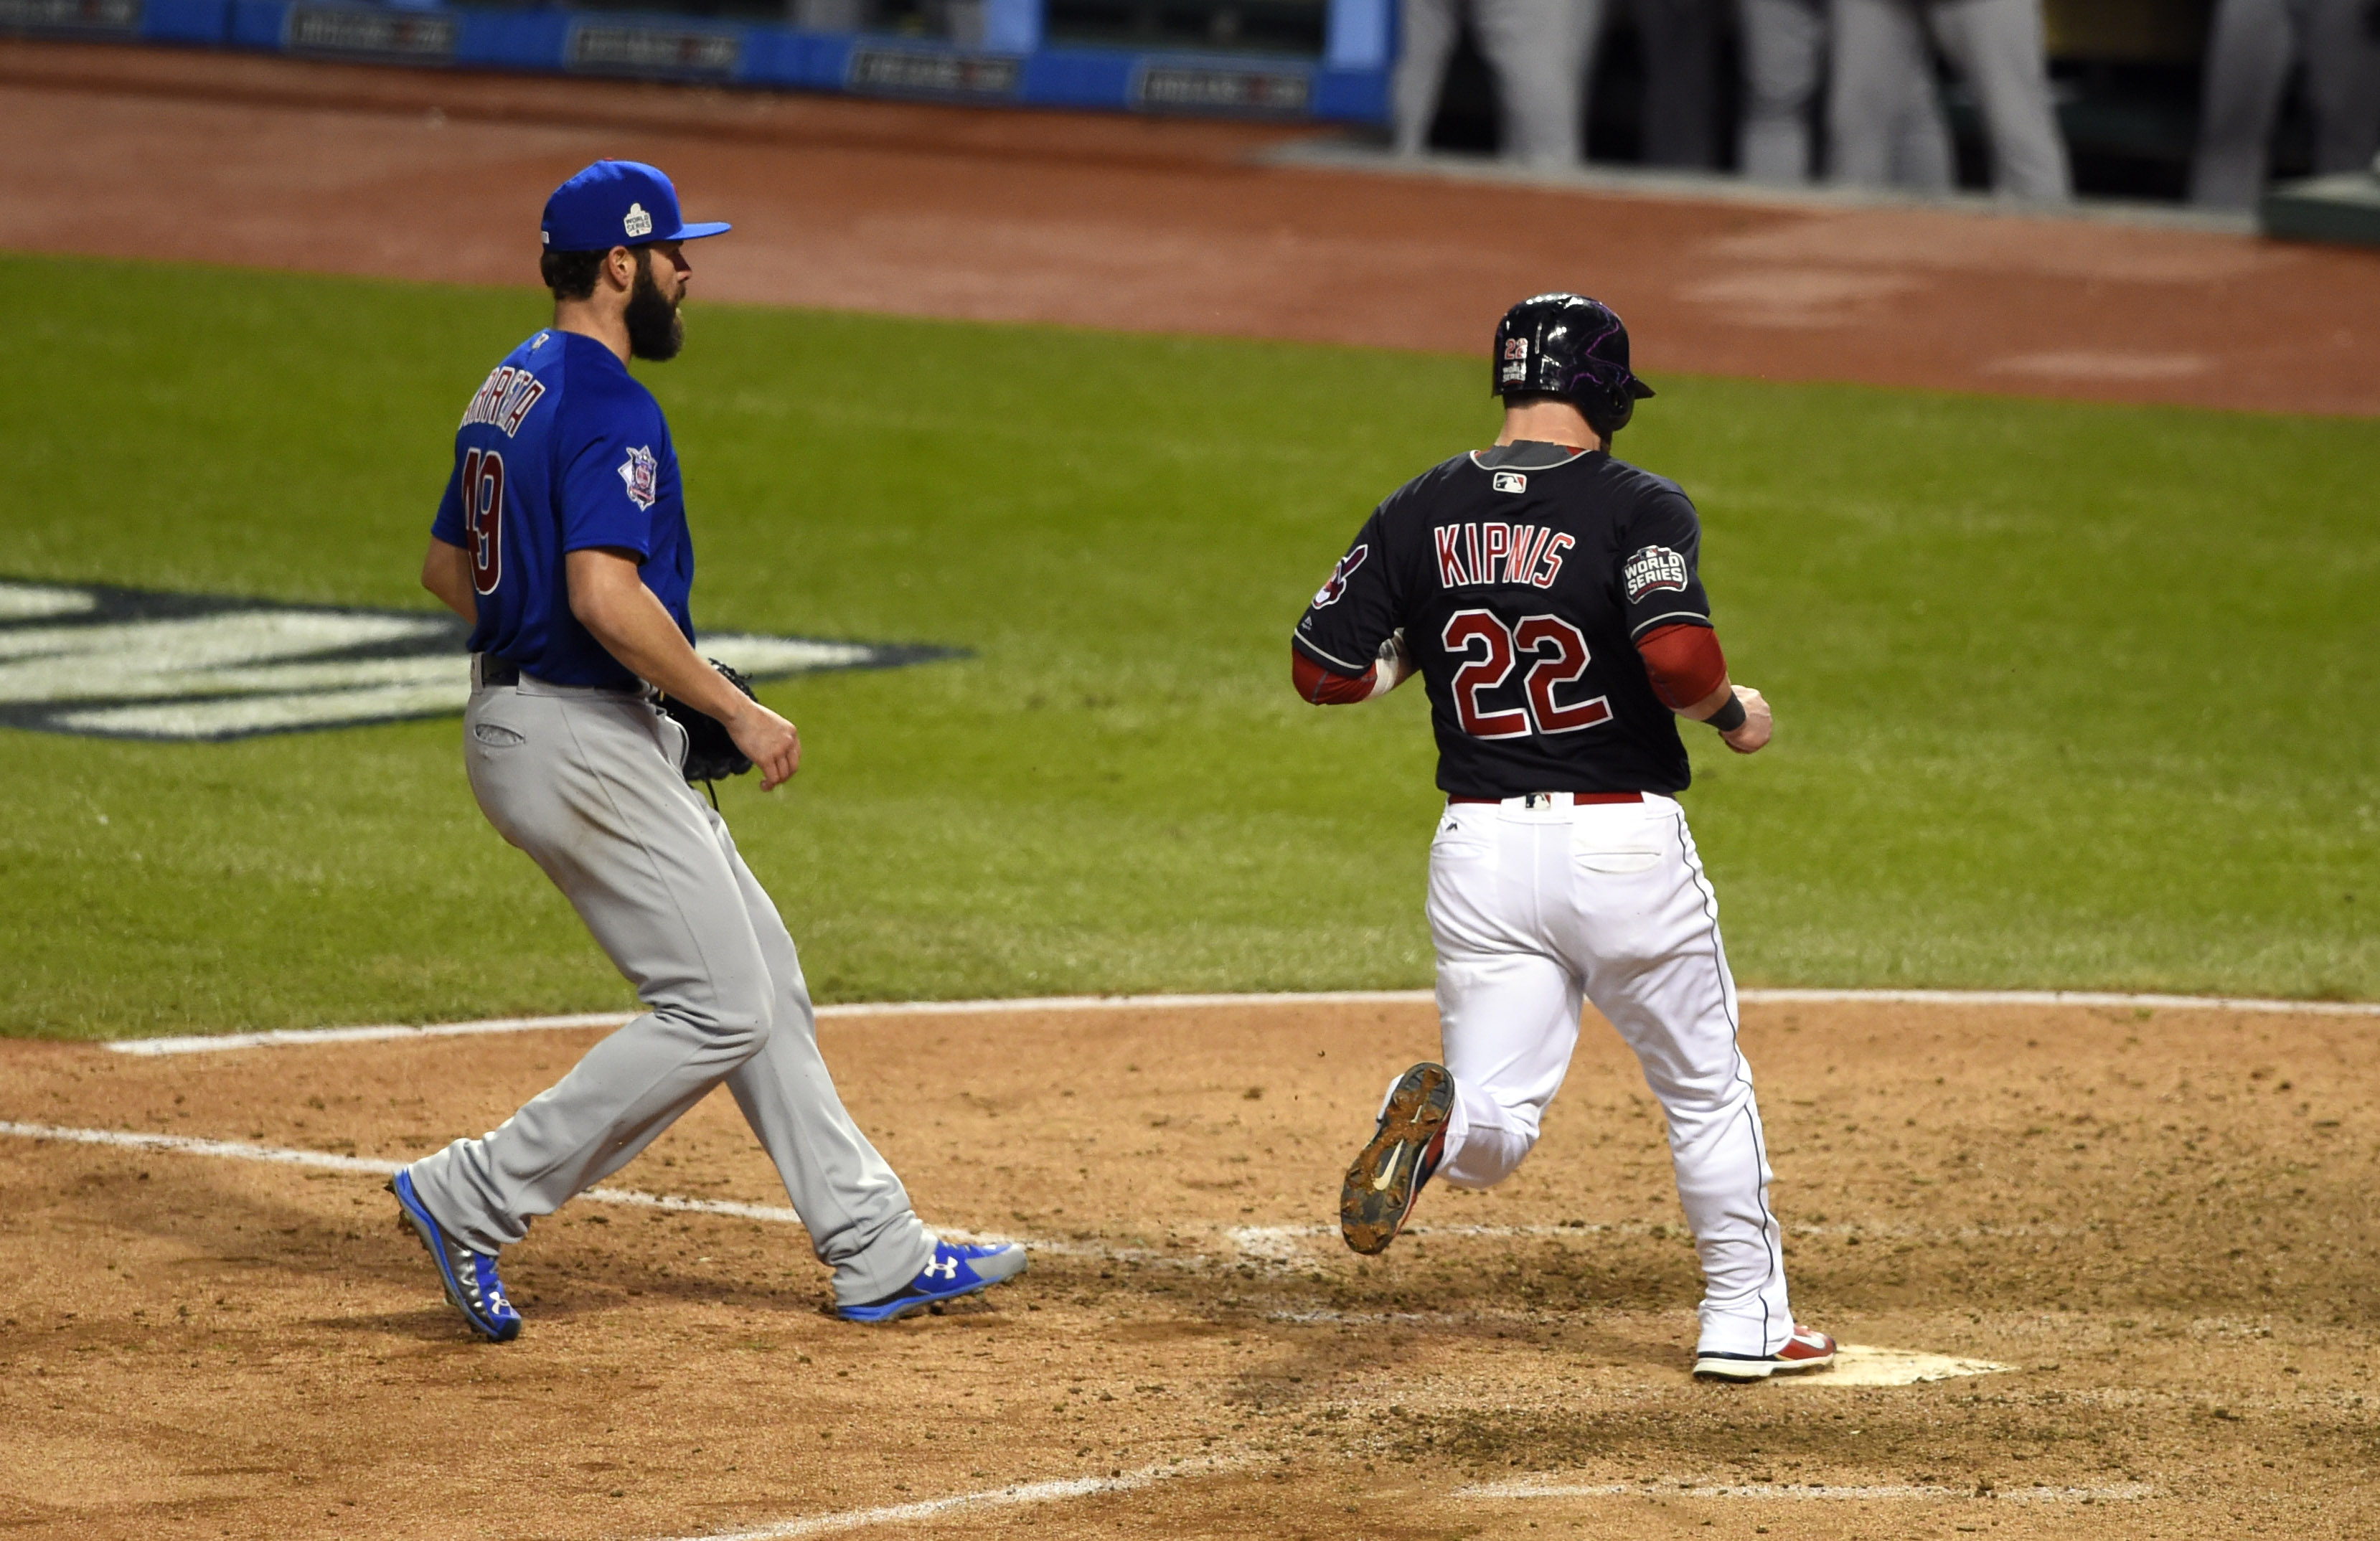 9634047-mlb-world-series-chicago-cubs-at-cleveland-indians